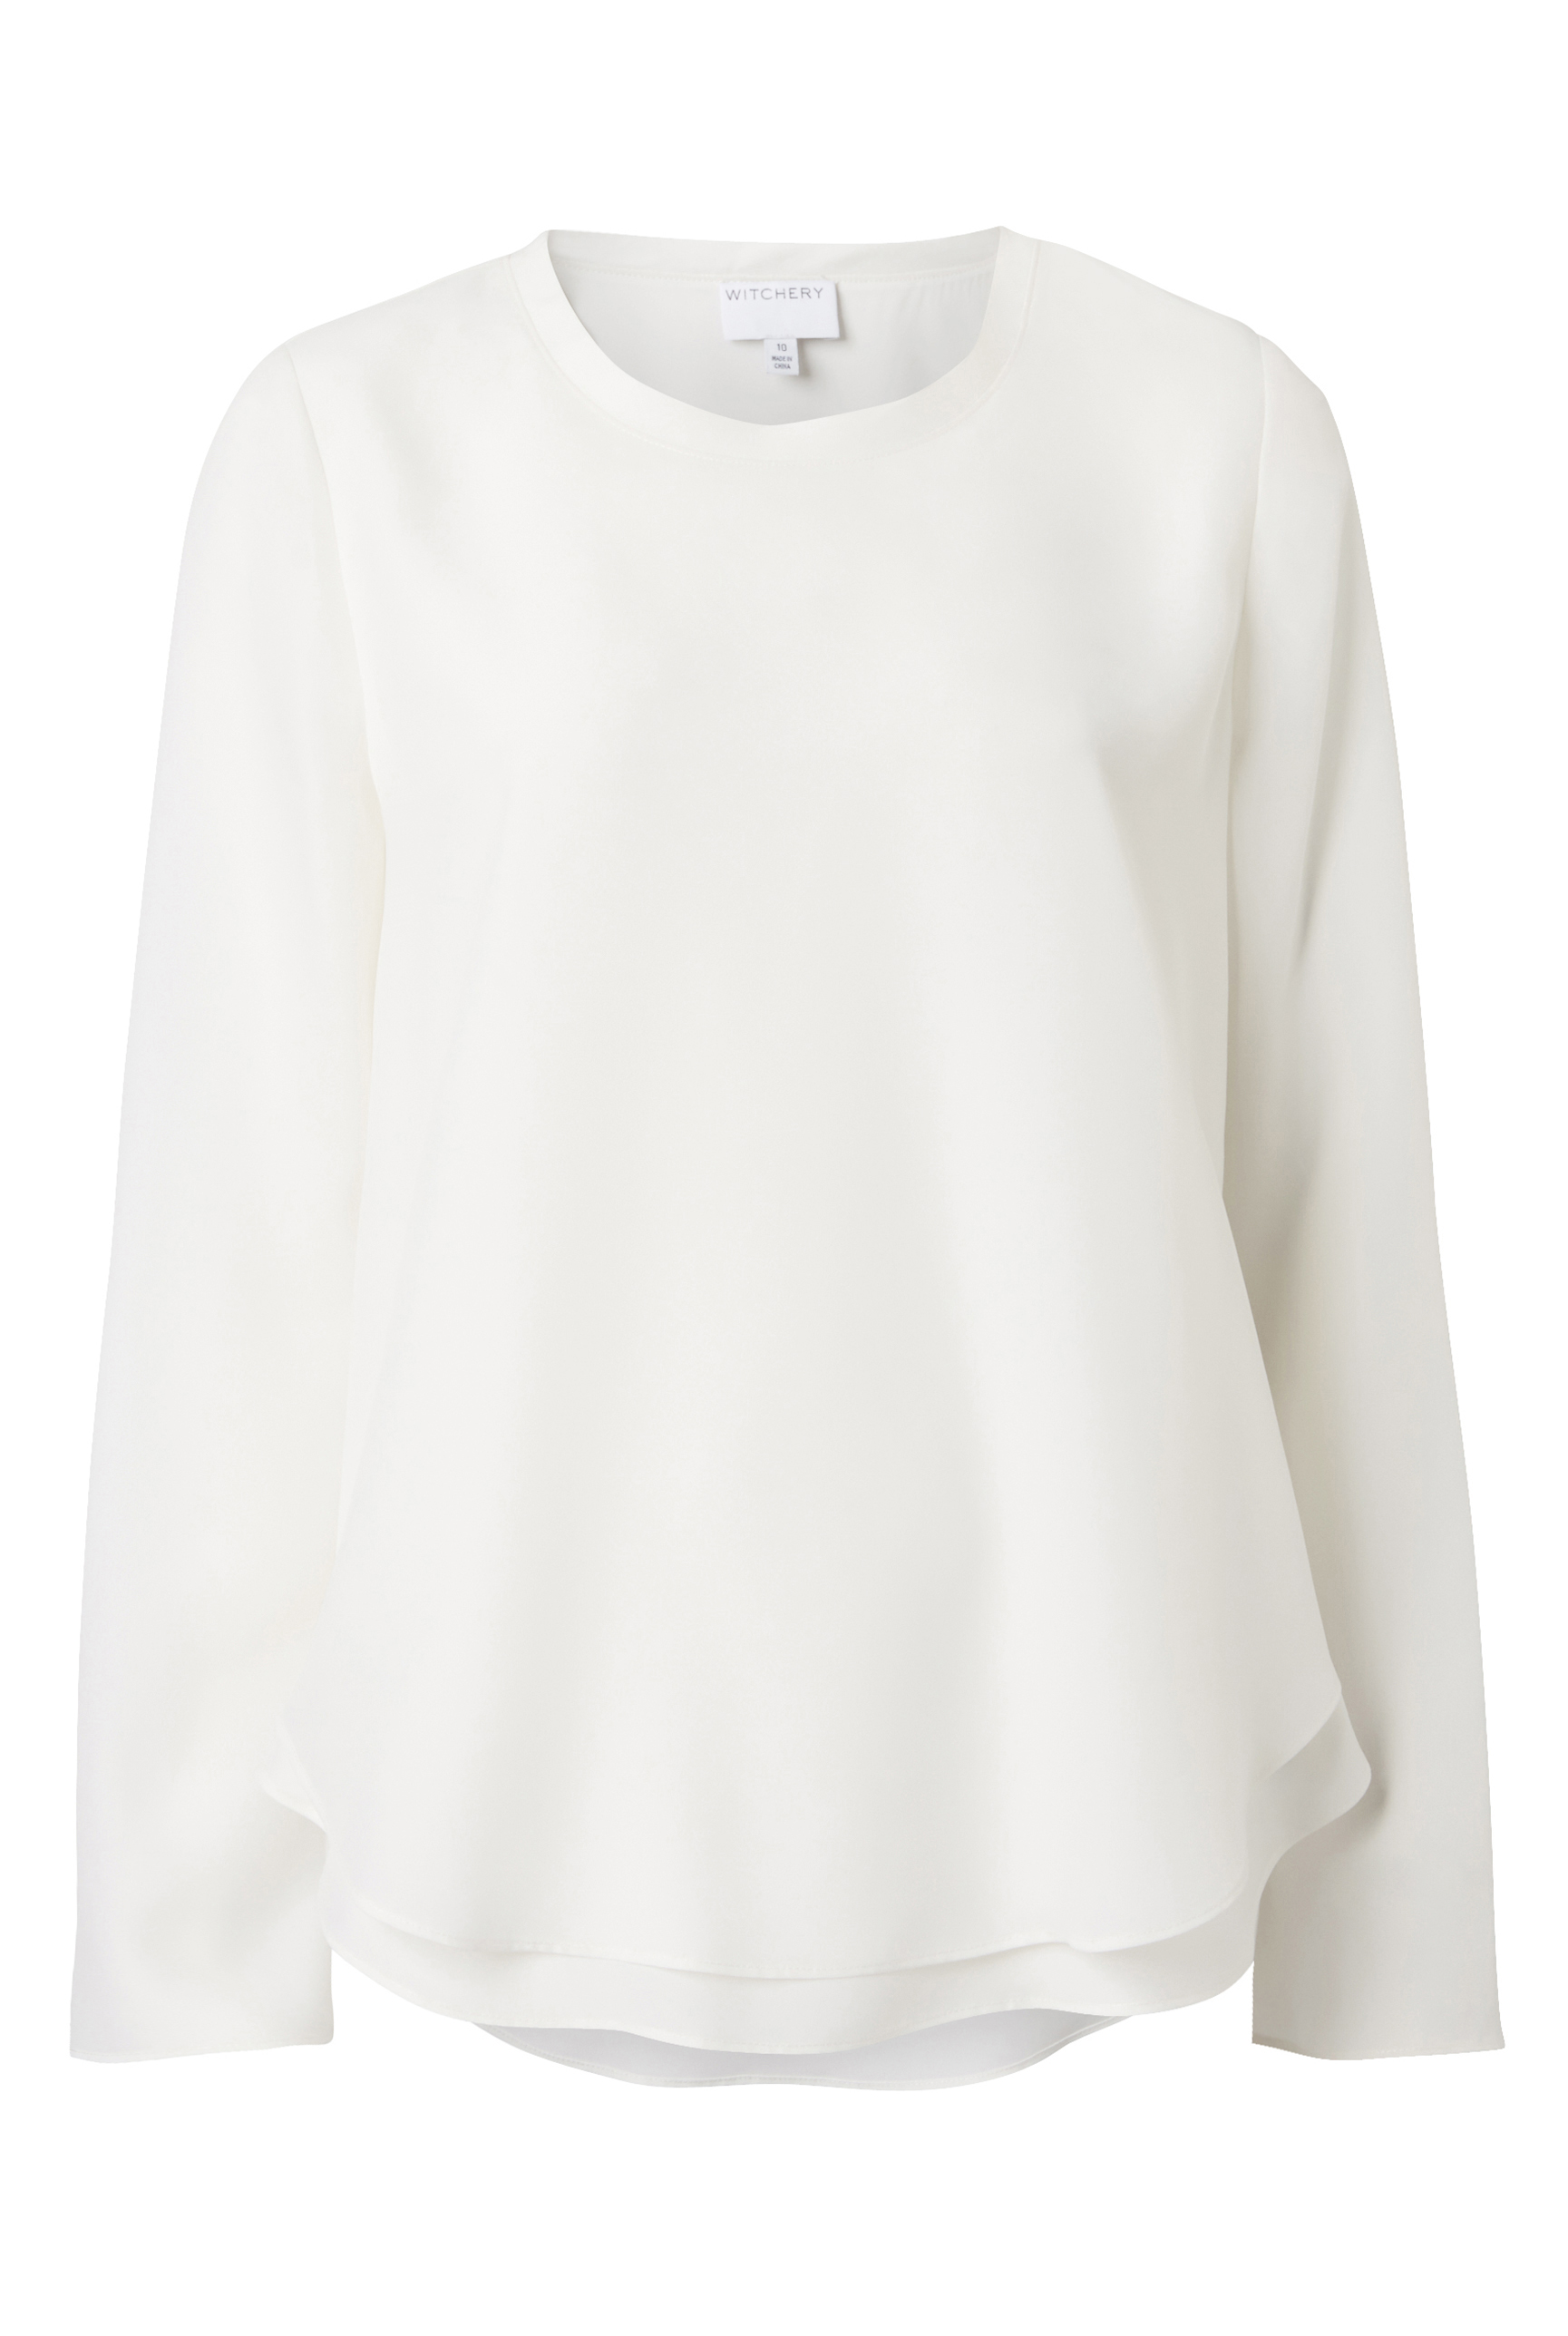 Witchery Layer Blouse, RRP $139.90